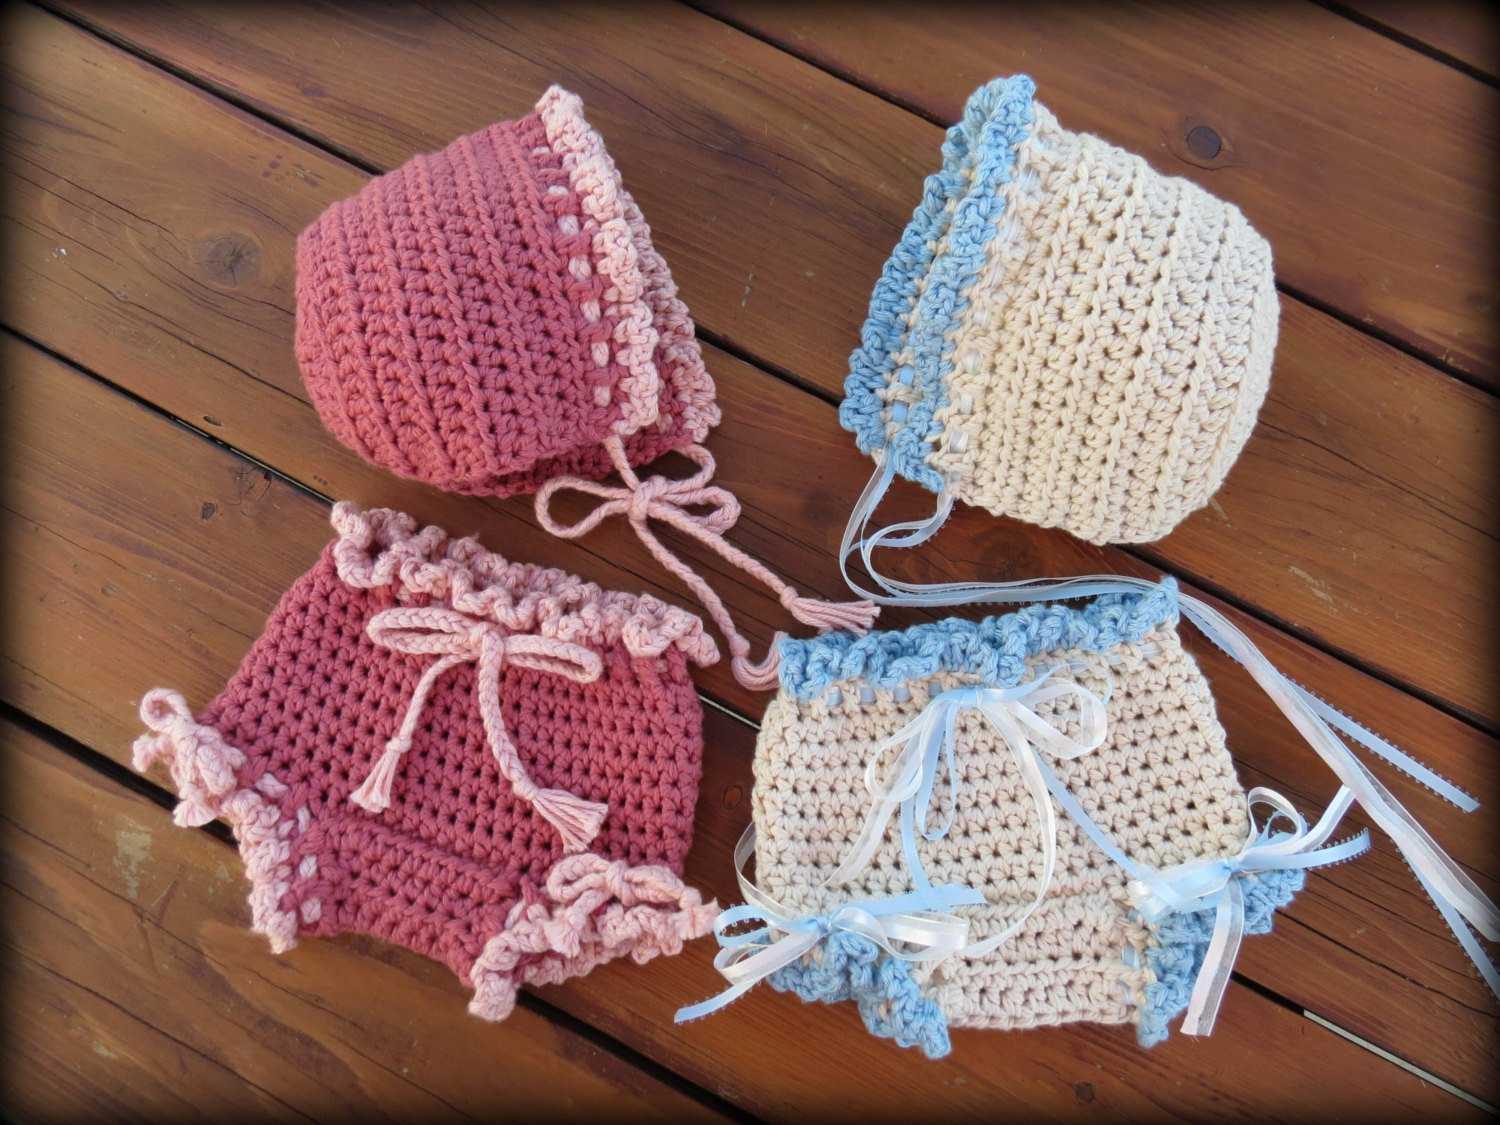 Crochet Baby Diaper Cover and Hat Best Of Crochet Diaper Cover Pattern Crochet Baby Hat Pattern Of Perfect 50 Photos Crochet Baby Diaper Cover and Hat